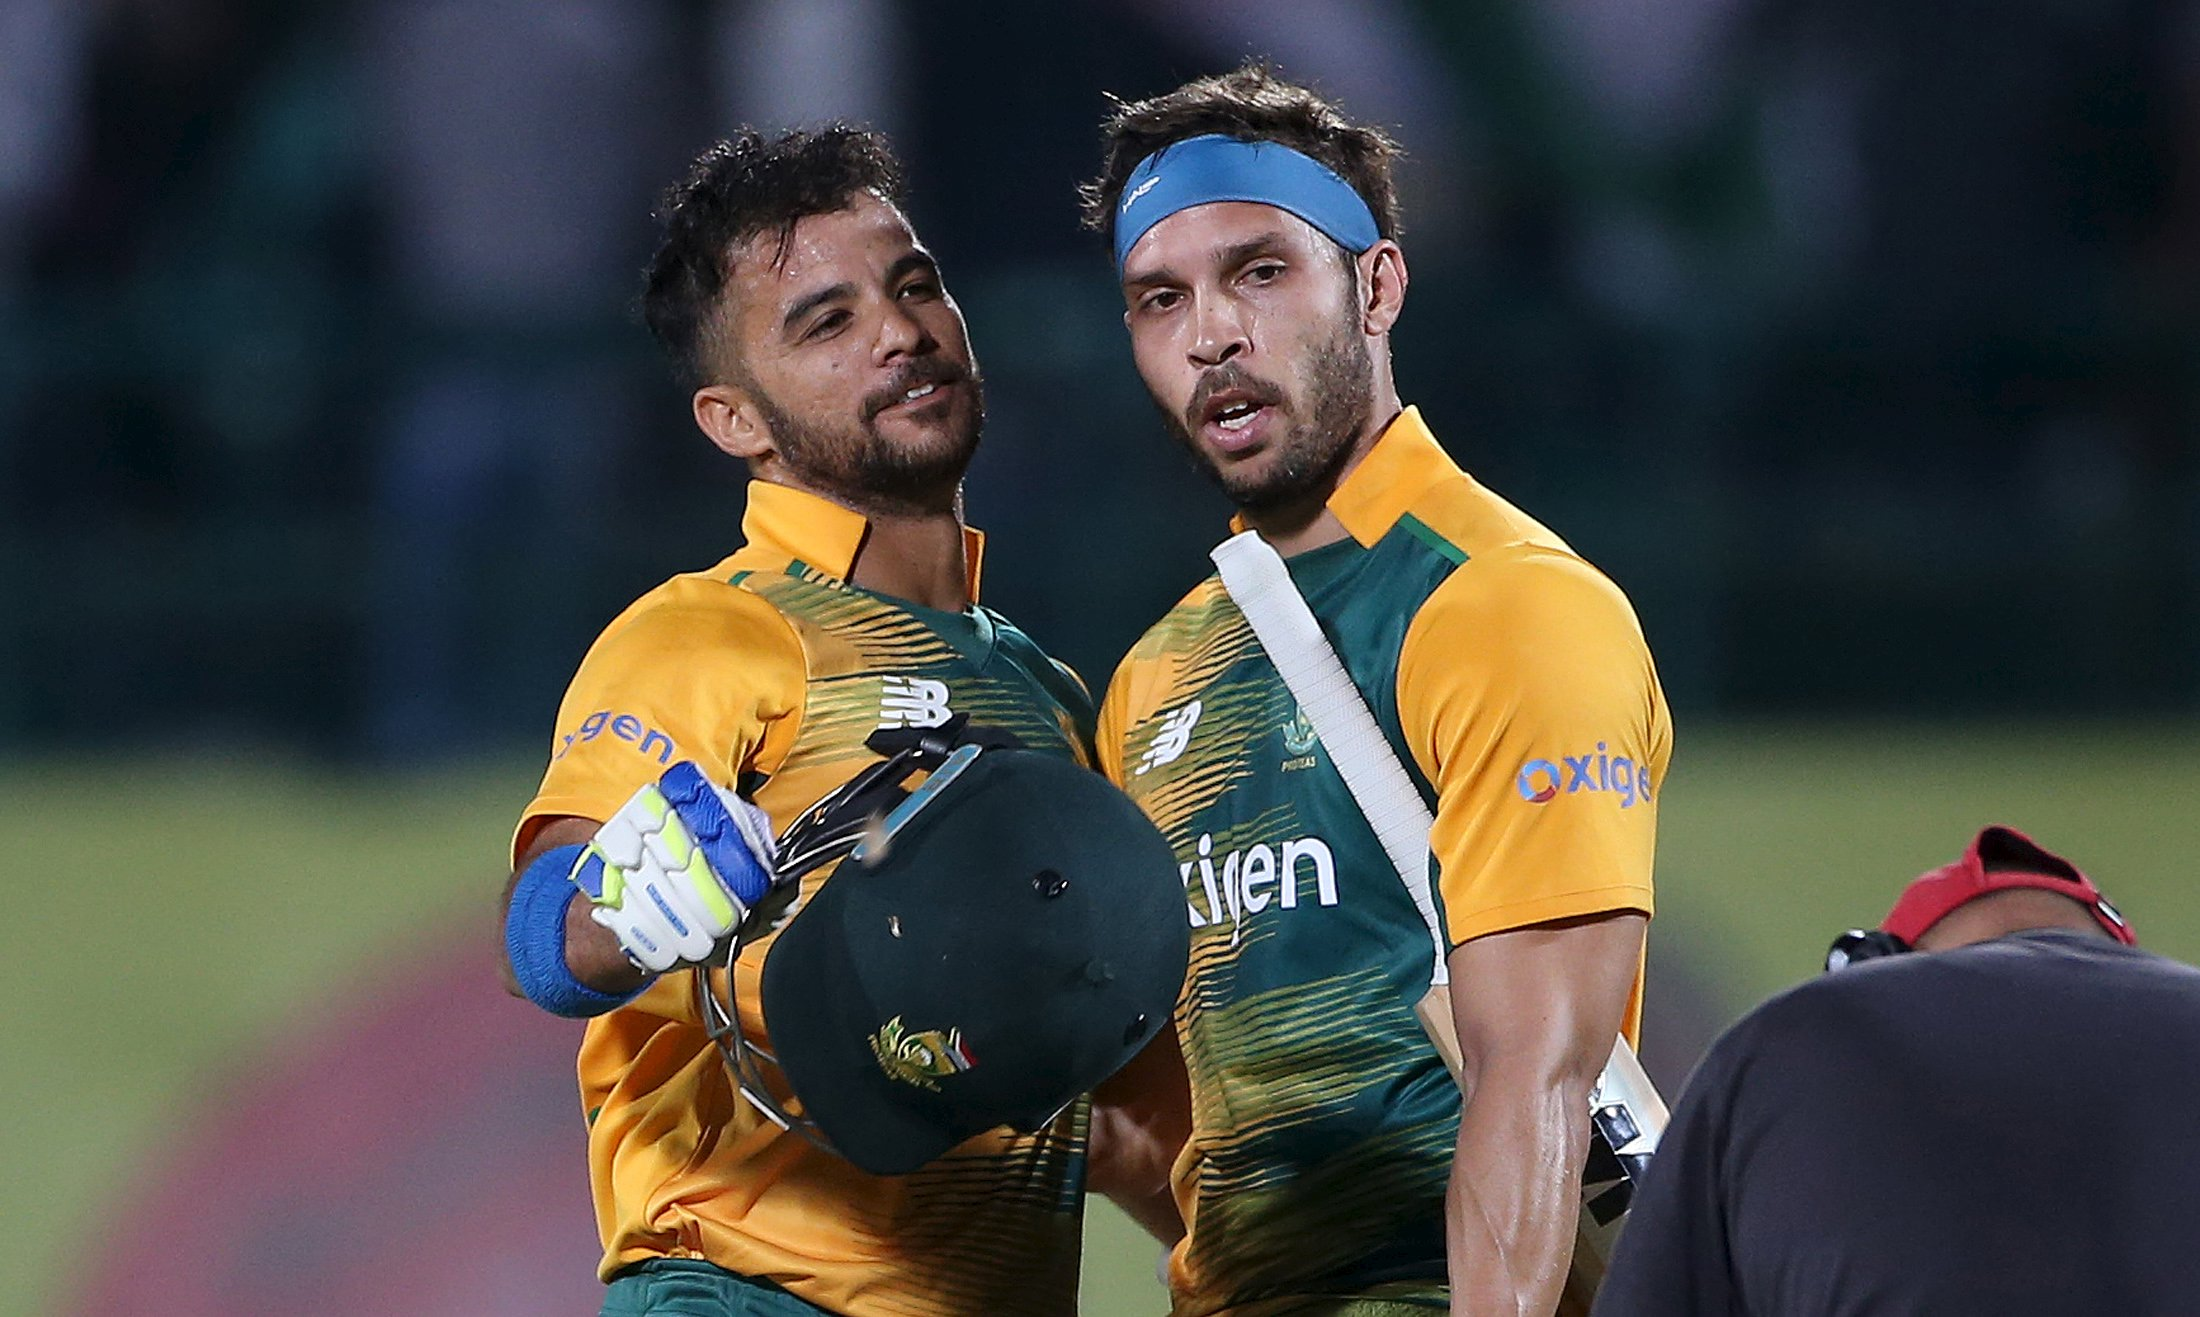 South Africa's Farhaan Behardien (R) and Jean-Paul Duminy celebrate their team's victory over India during their first Twenty-20 cricket match in the northern Indian hill town of Dharamsala, India, October 2, 2015. REUTERS/Adnan Abidi